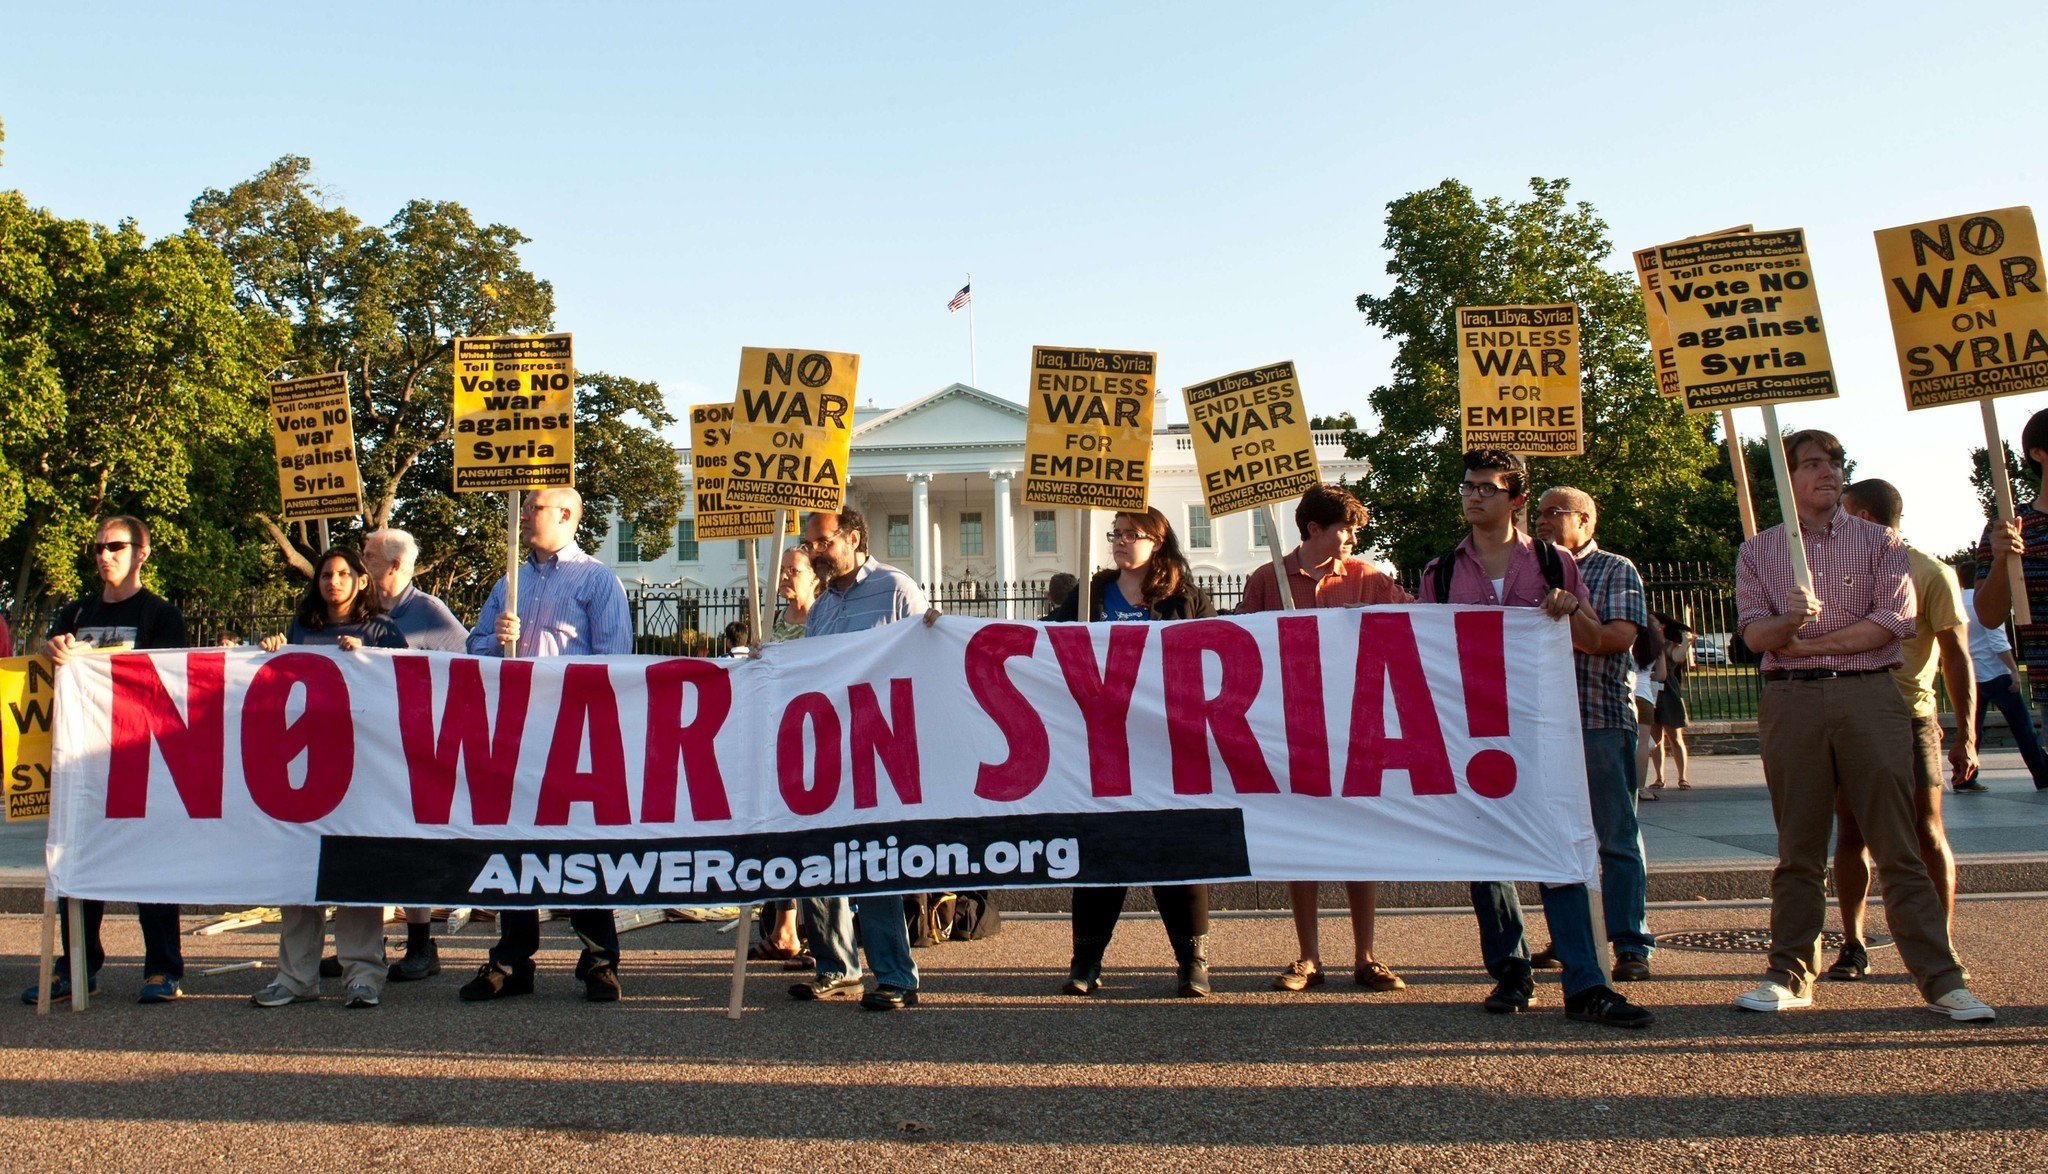 Debate over  strikes on Syria - Anti-intervention protests